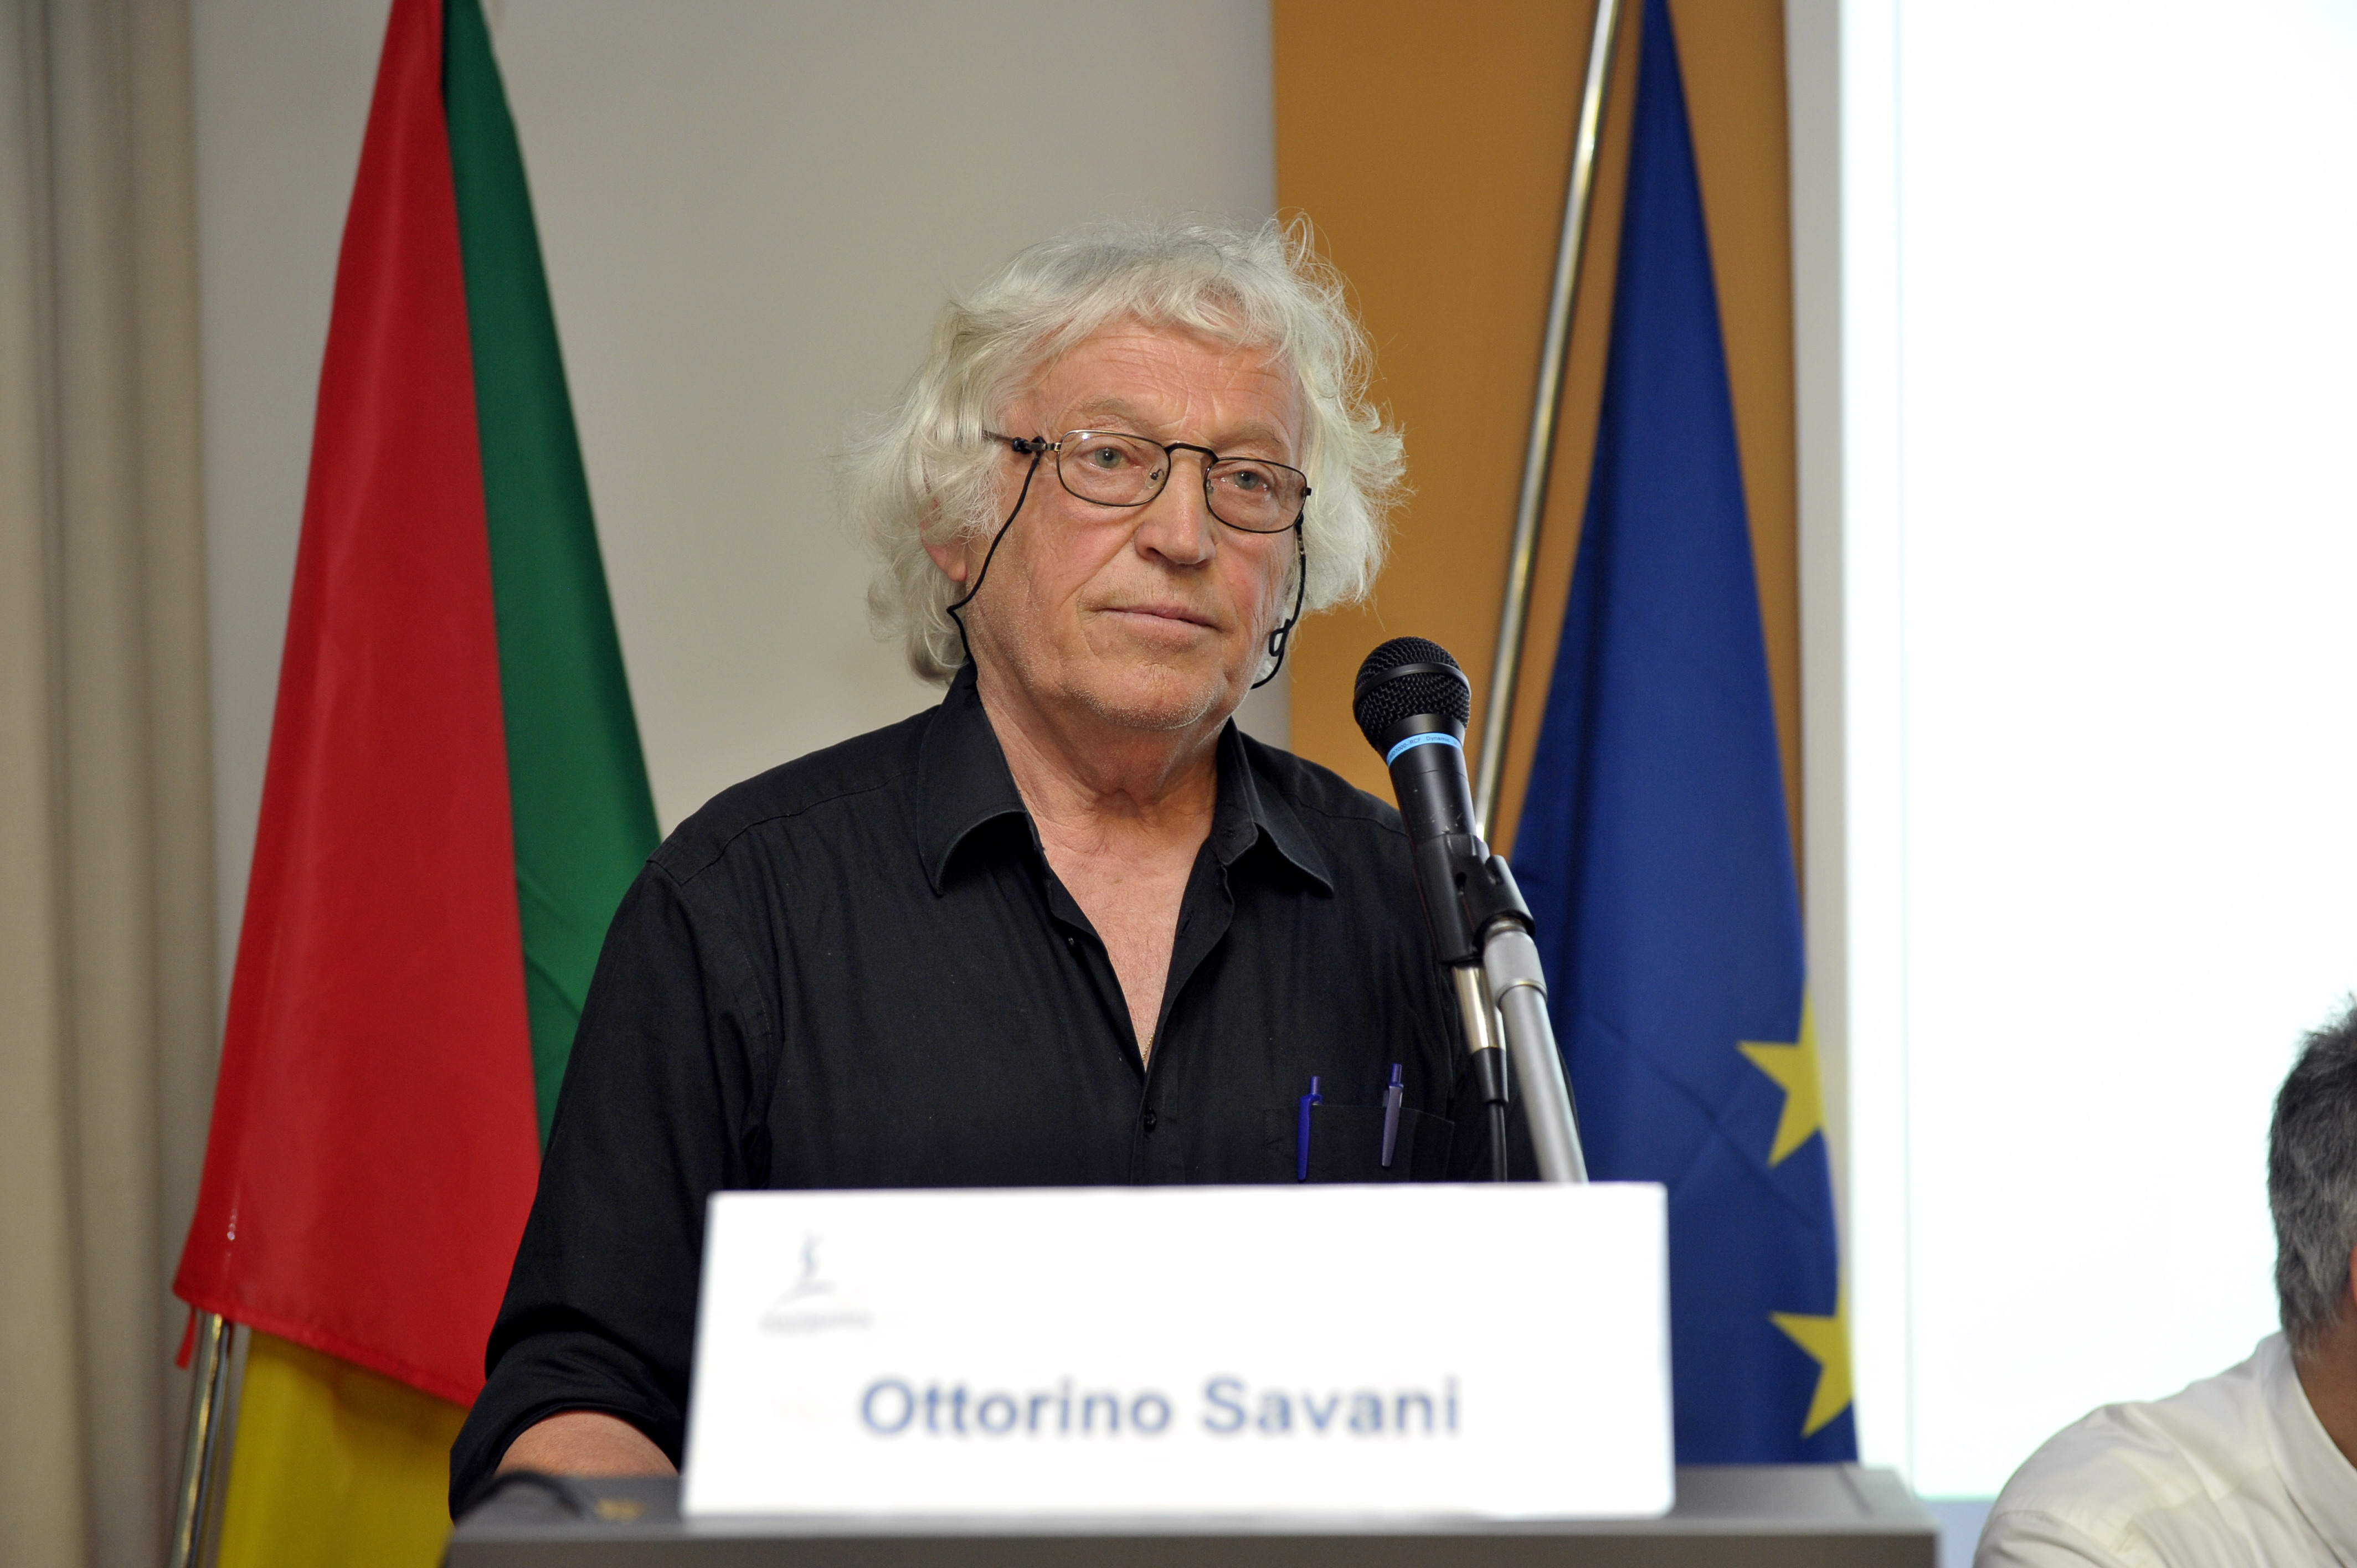 6.6.2015 - Interviene Ottorino Savani, Presidente AIT Onlus